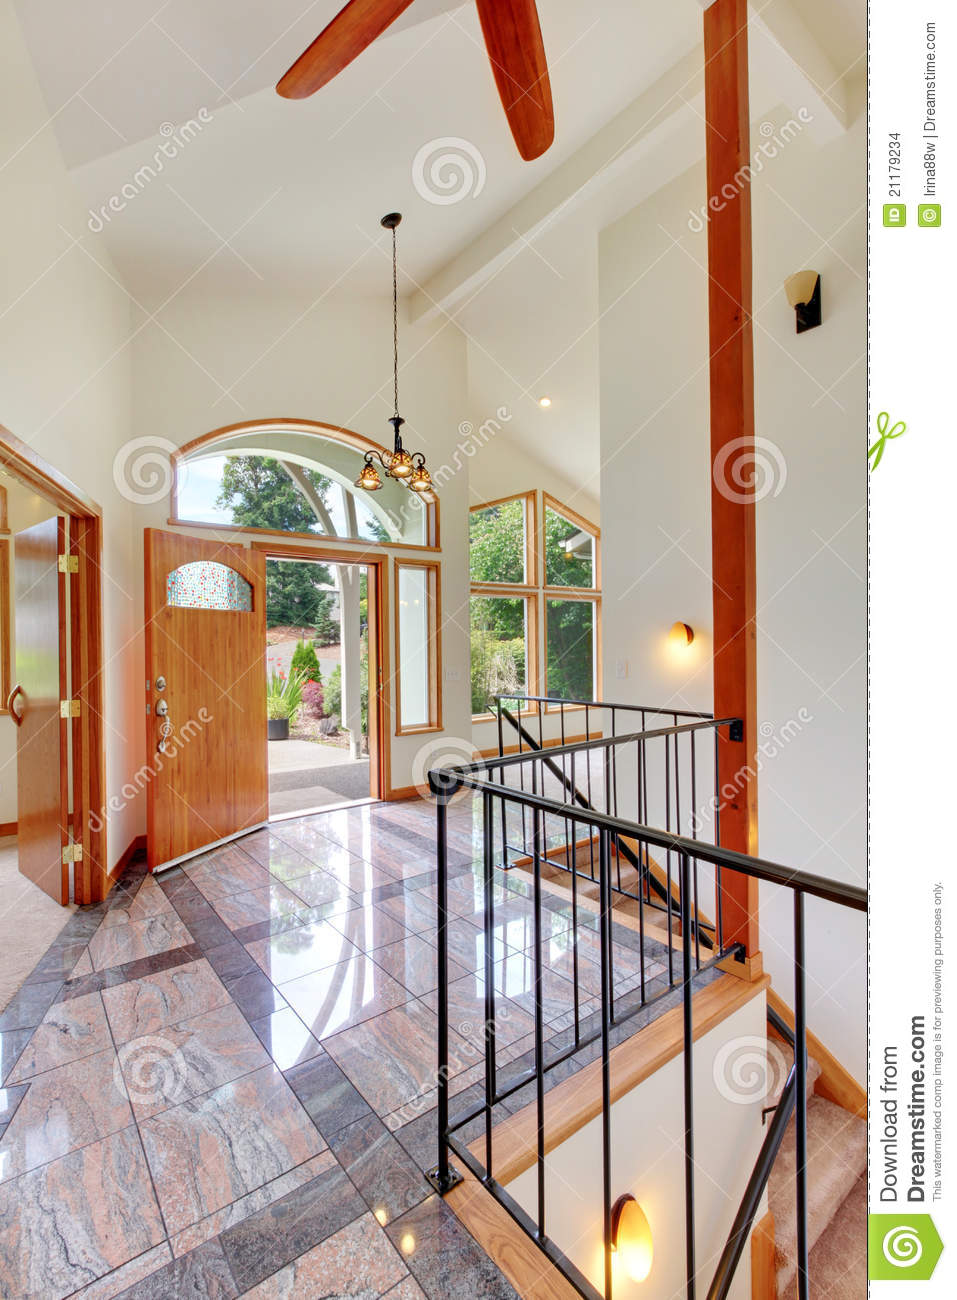 Entrance with marble floor high ceiling and door